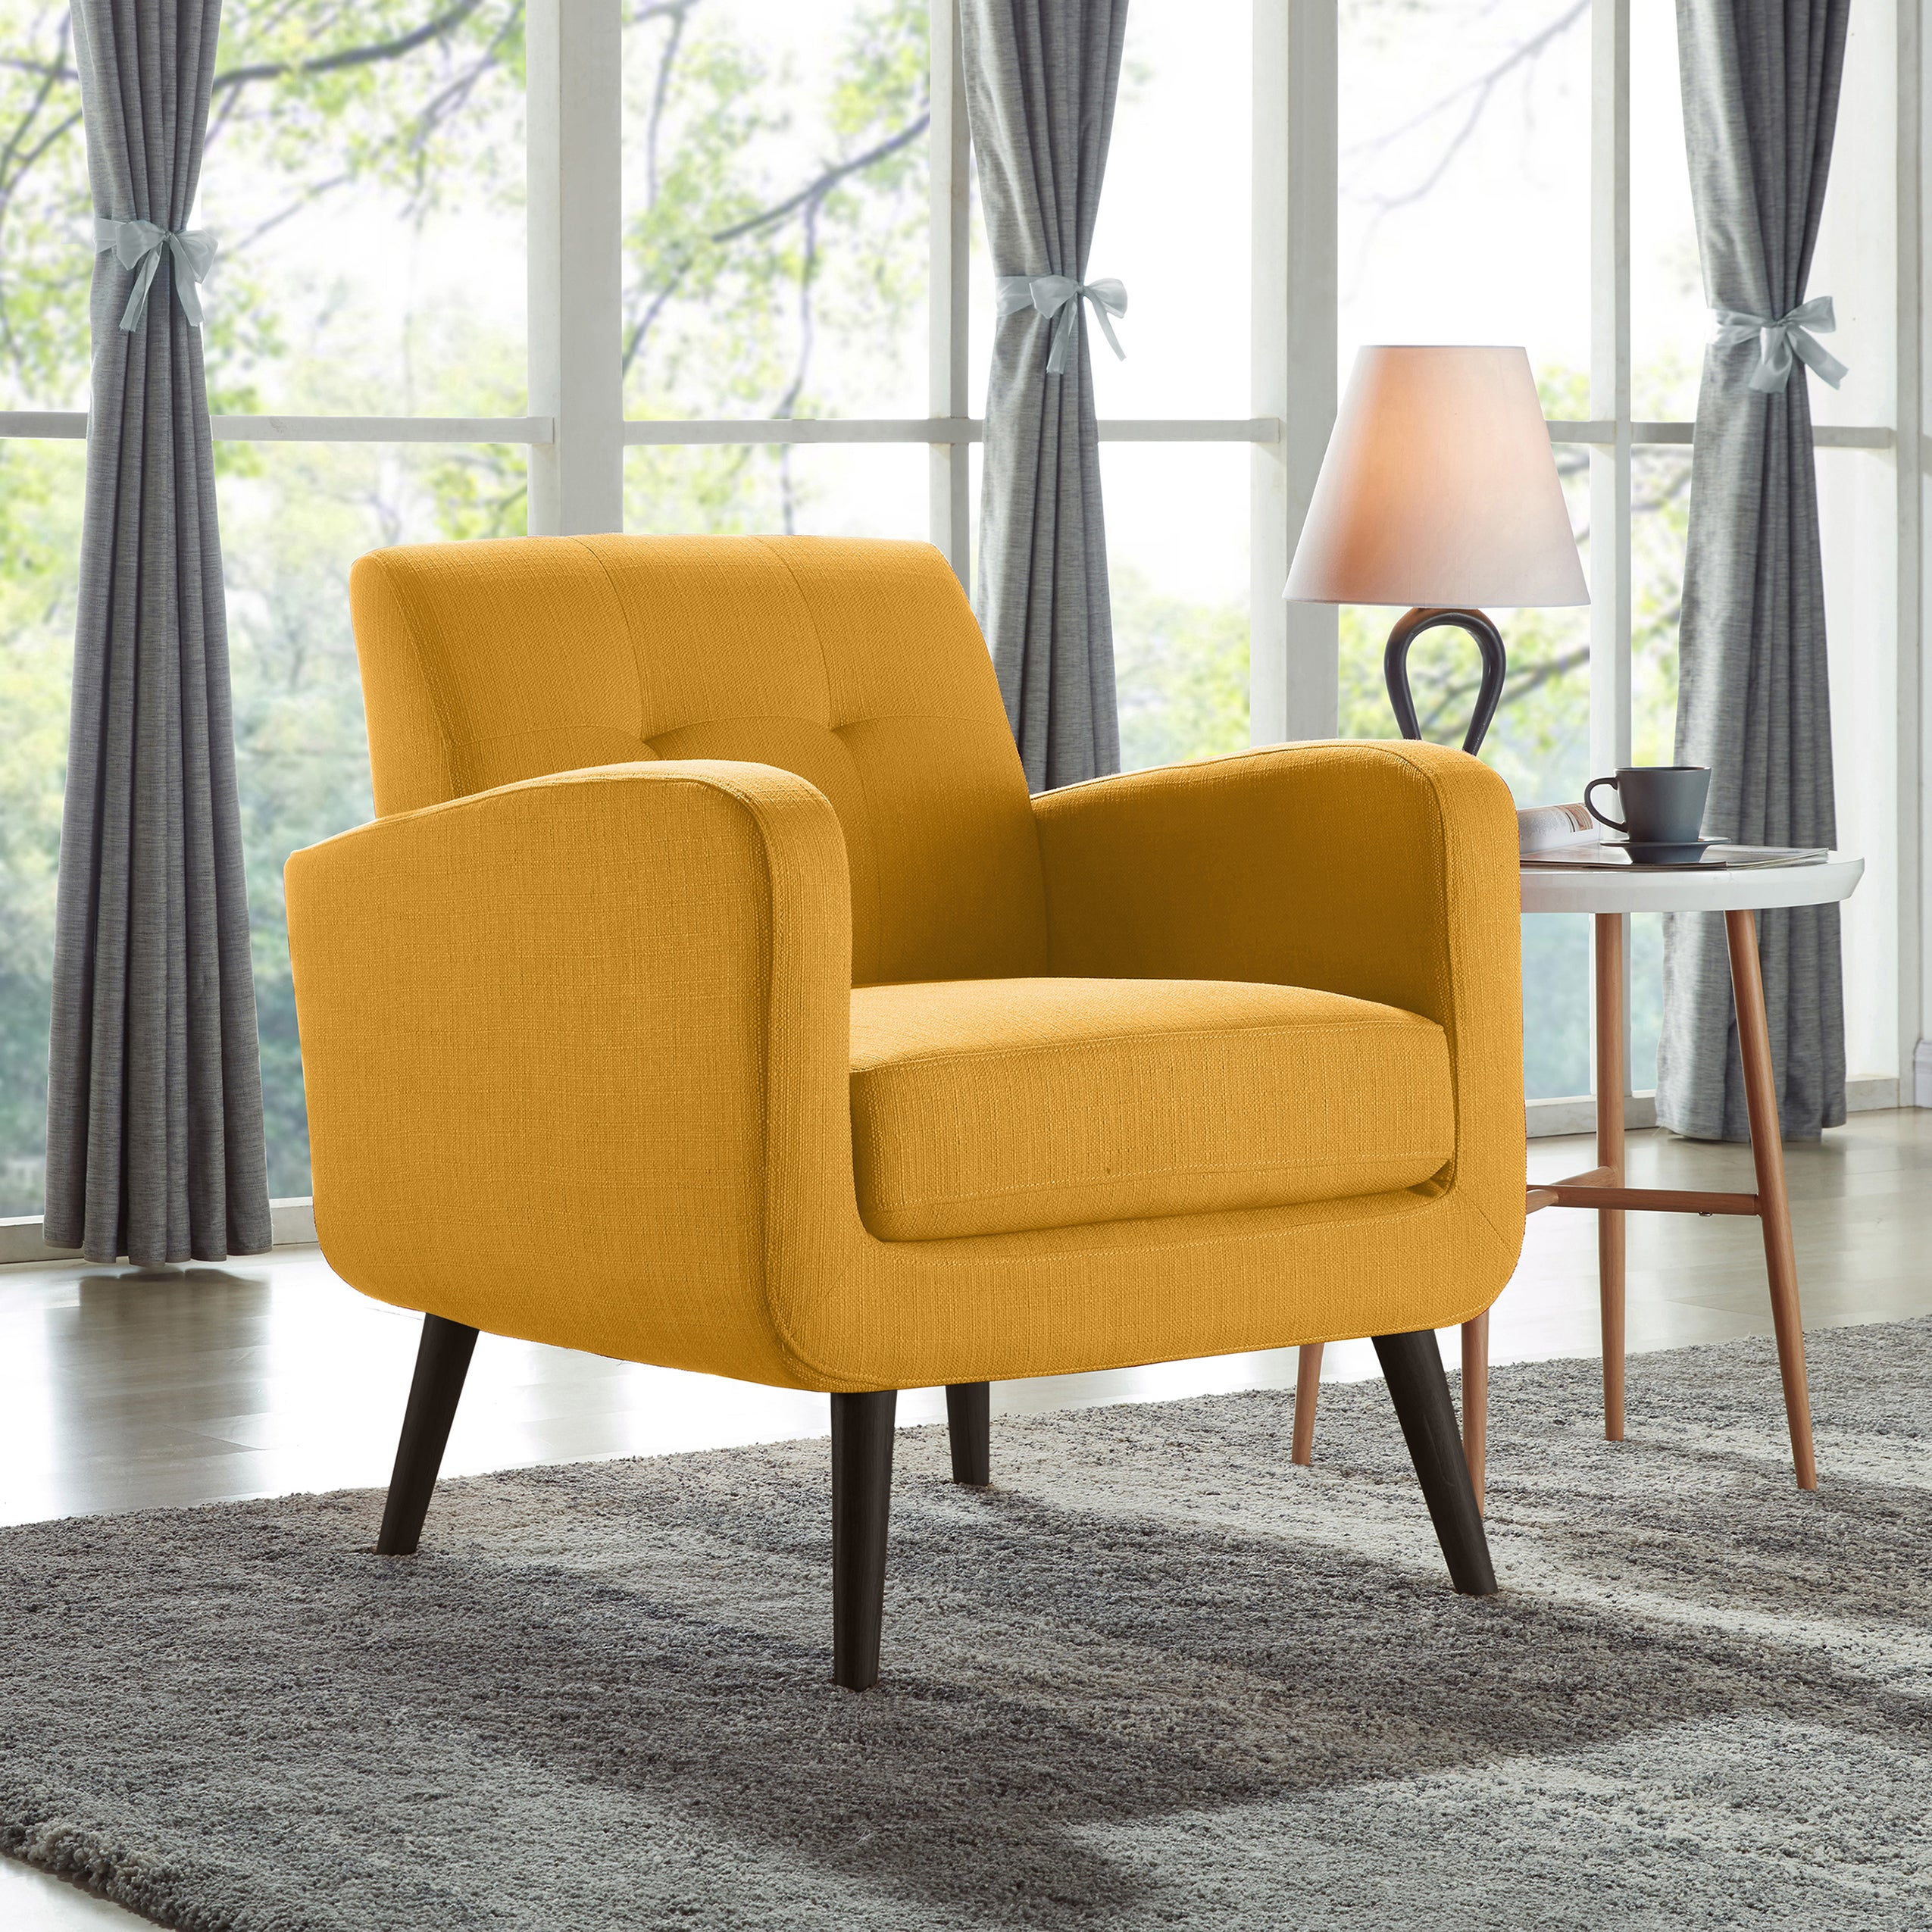 Fine Accent Chairs Shop Online At Overstock Beatyapartments Chair Design Images Beatyapartmentscom